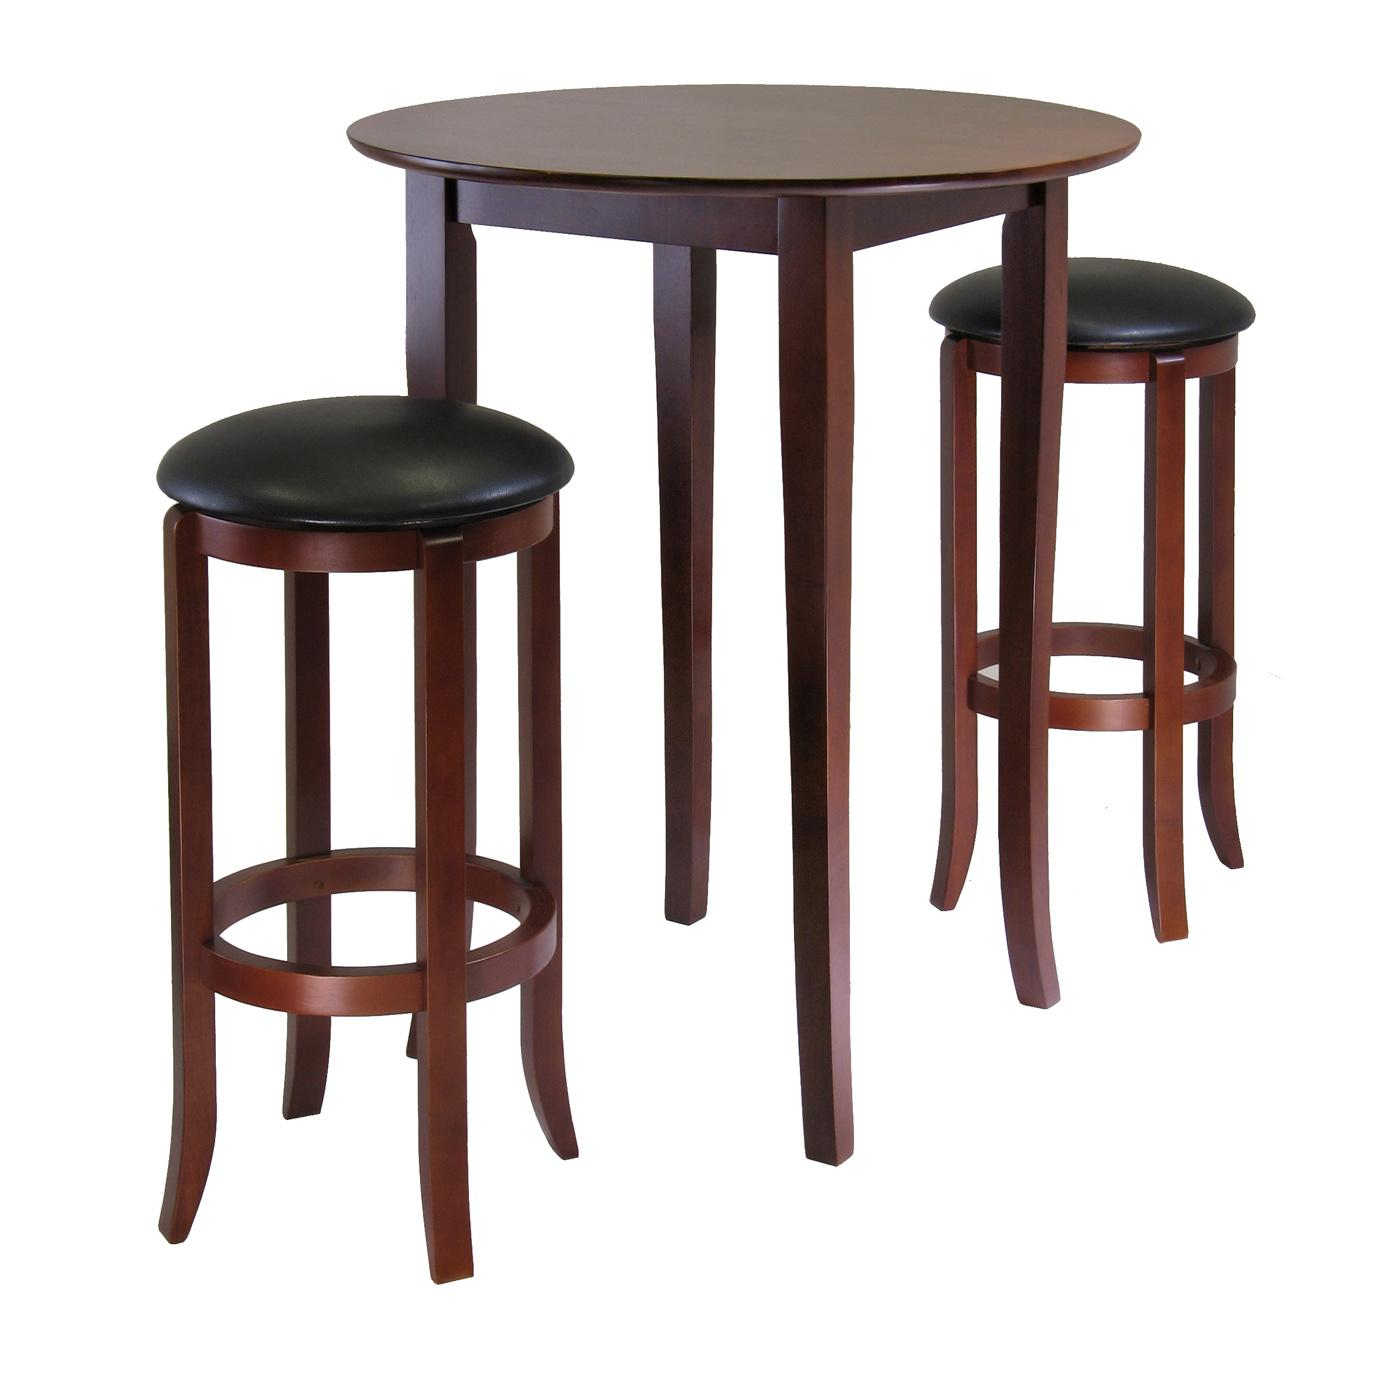 Bar Tables And Chairs Furniture Home Goods Appliances Athletic Gear Fitness